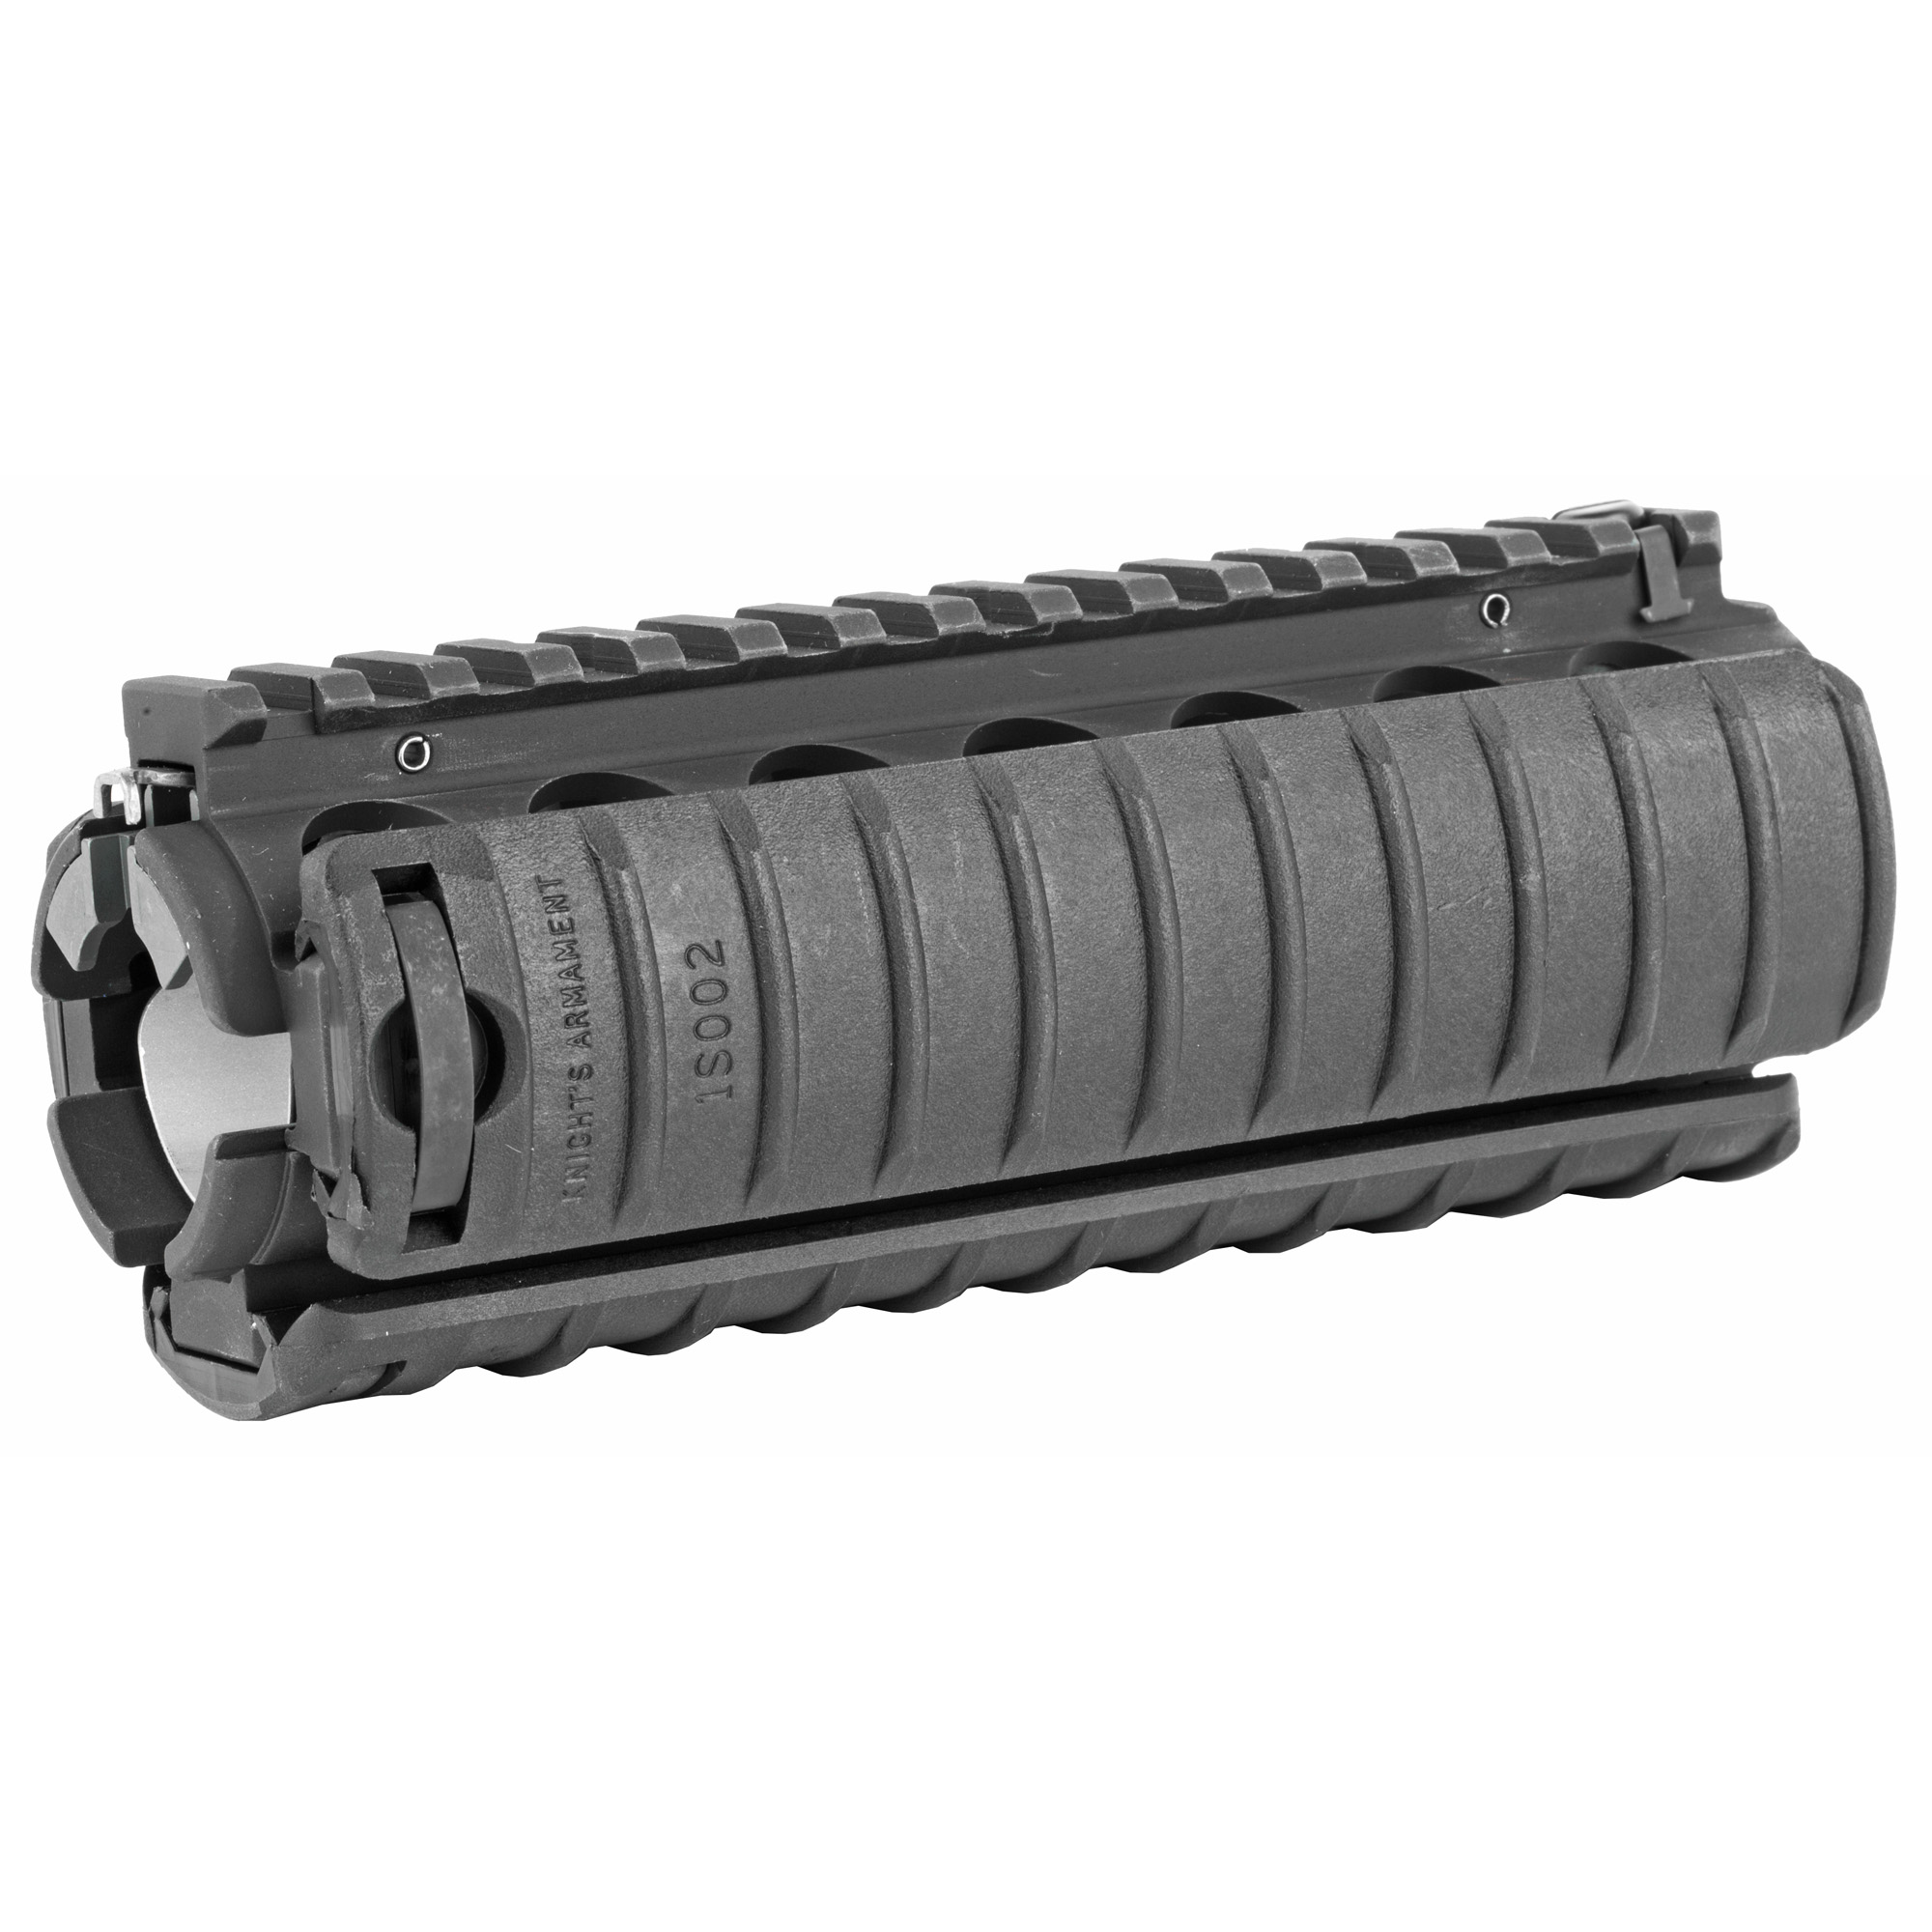 """Knights Armament Co.'s M4 RAS 6.25"""" (Rail Adapter System) was developed for use on the US military's M4 Carbine"""" and with over 1 million rails issued to date"""" it is one of the most battle proven designs available for the AR-15 platform. This non-free float handguard is a simple-to-install"""" drop-in upgrade that features genuine Mil-Spec M1913 Picatinny Rails along its entire length. What sets the M4 RAS apart from other 2-piece quad rails on the market is that it securely locks to the rifle's barrel nut via a clamp and screw arrangement"""" making it a very solid foundation upon which to mount tactical accessories. Includes three KAC 11 Rib Rail Panels. The M4 RAS is a drop-in replacement part for standard"""" 2-piece polymer"""" M4-type handguards. The rifle must have a carbine length gas system"""" delta ring assembly"""" fixed front sight/gas block"""" and round handguard end cap. Lighter barrel profiles work best (M4 or Government contours). Heavier barrel contours may require modification to the inside of the rail. For AR-15/SR-15 based platforms only; not compatible with SR-25 variants. Installation instructions are included. Aluminum black finish."""